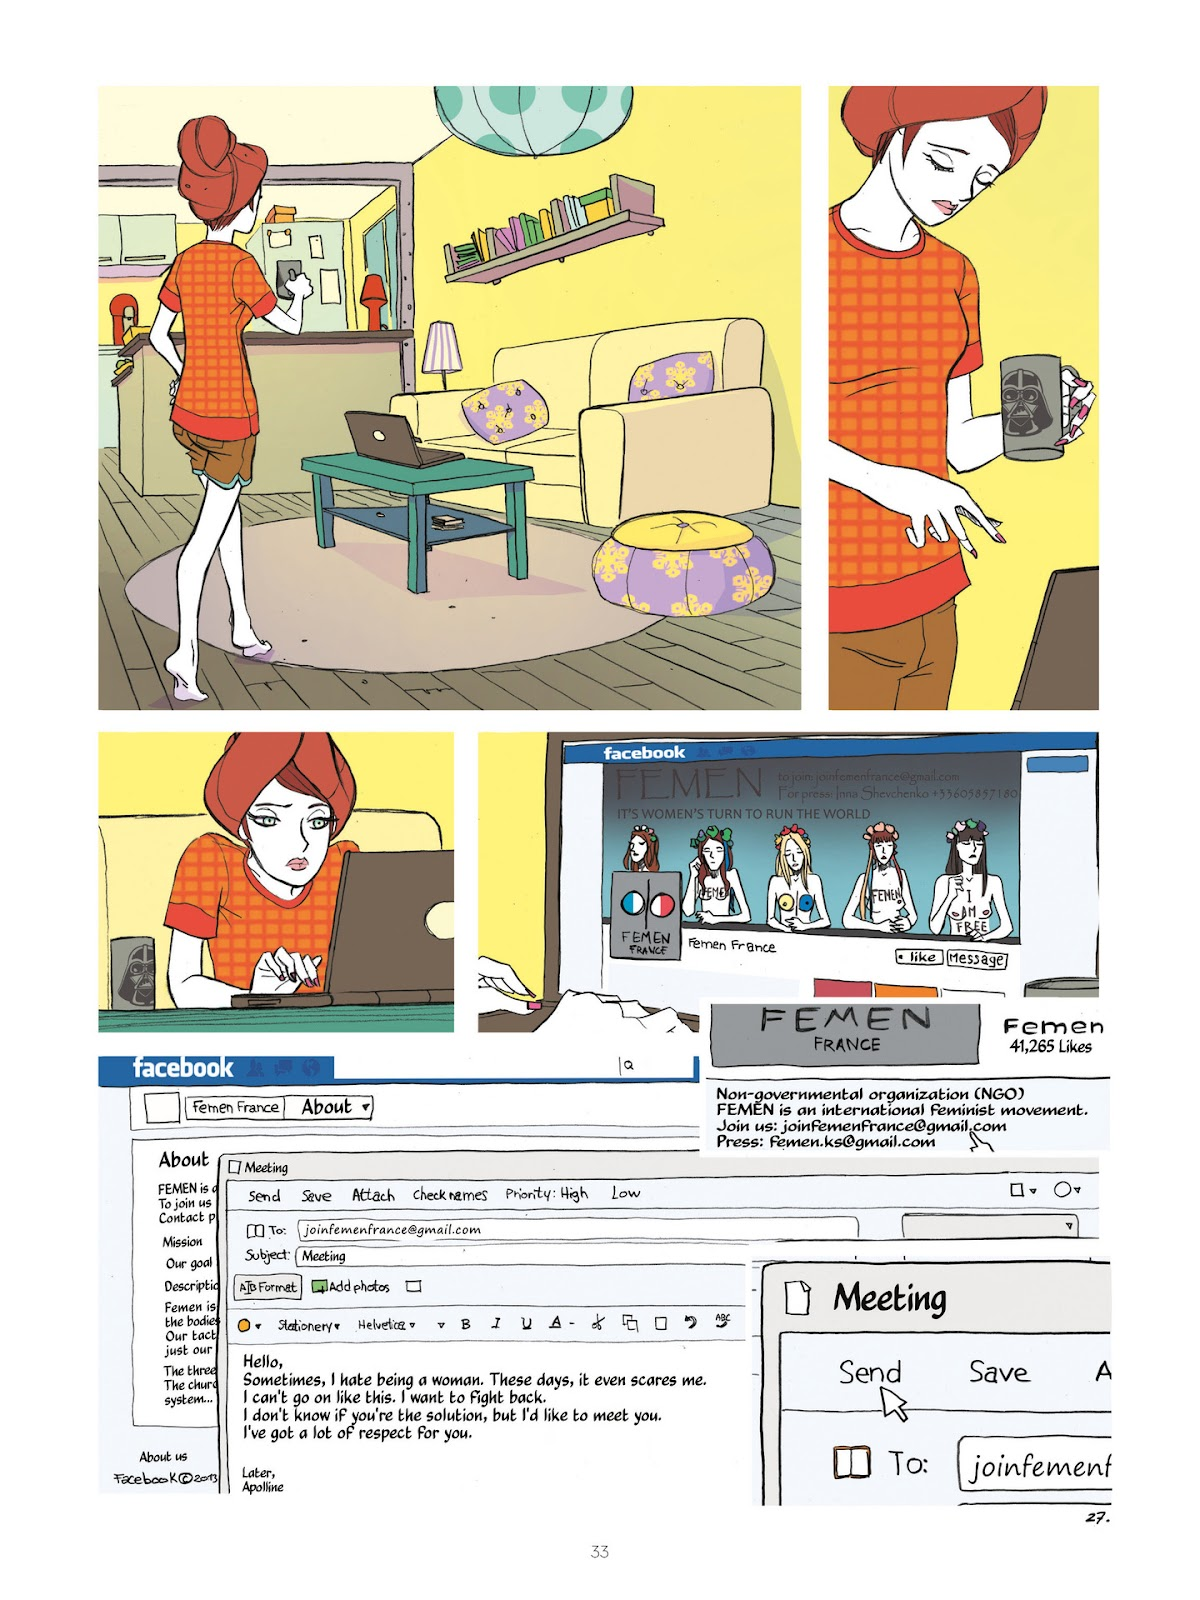 Read online Diary of A Femen comic -  Issue # TPB - 35